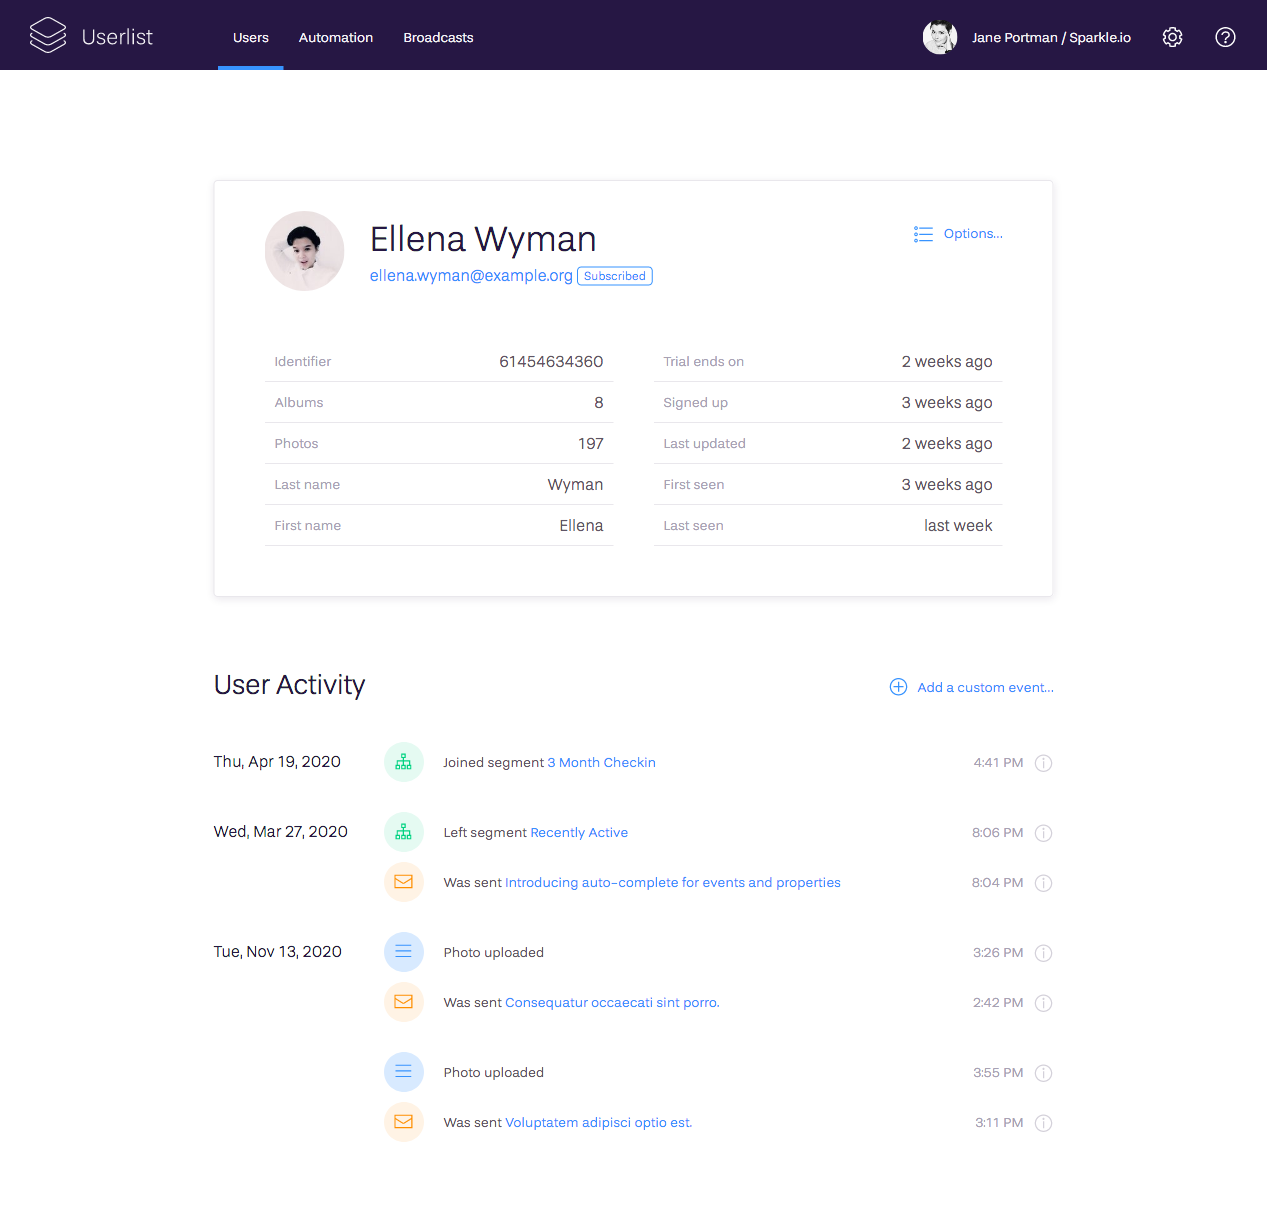 Explore individual user profiles